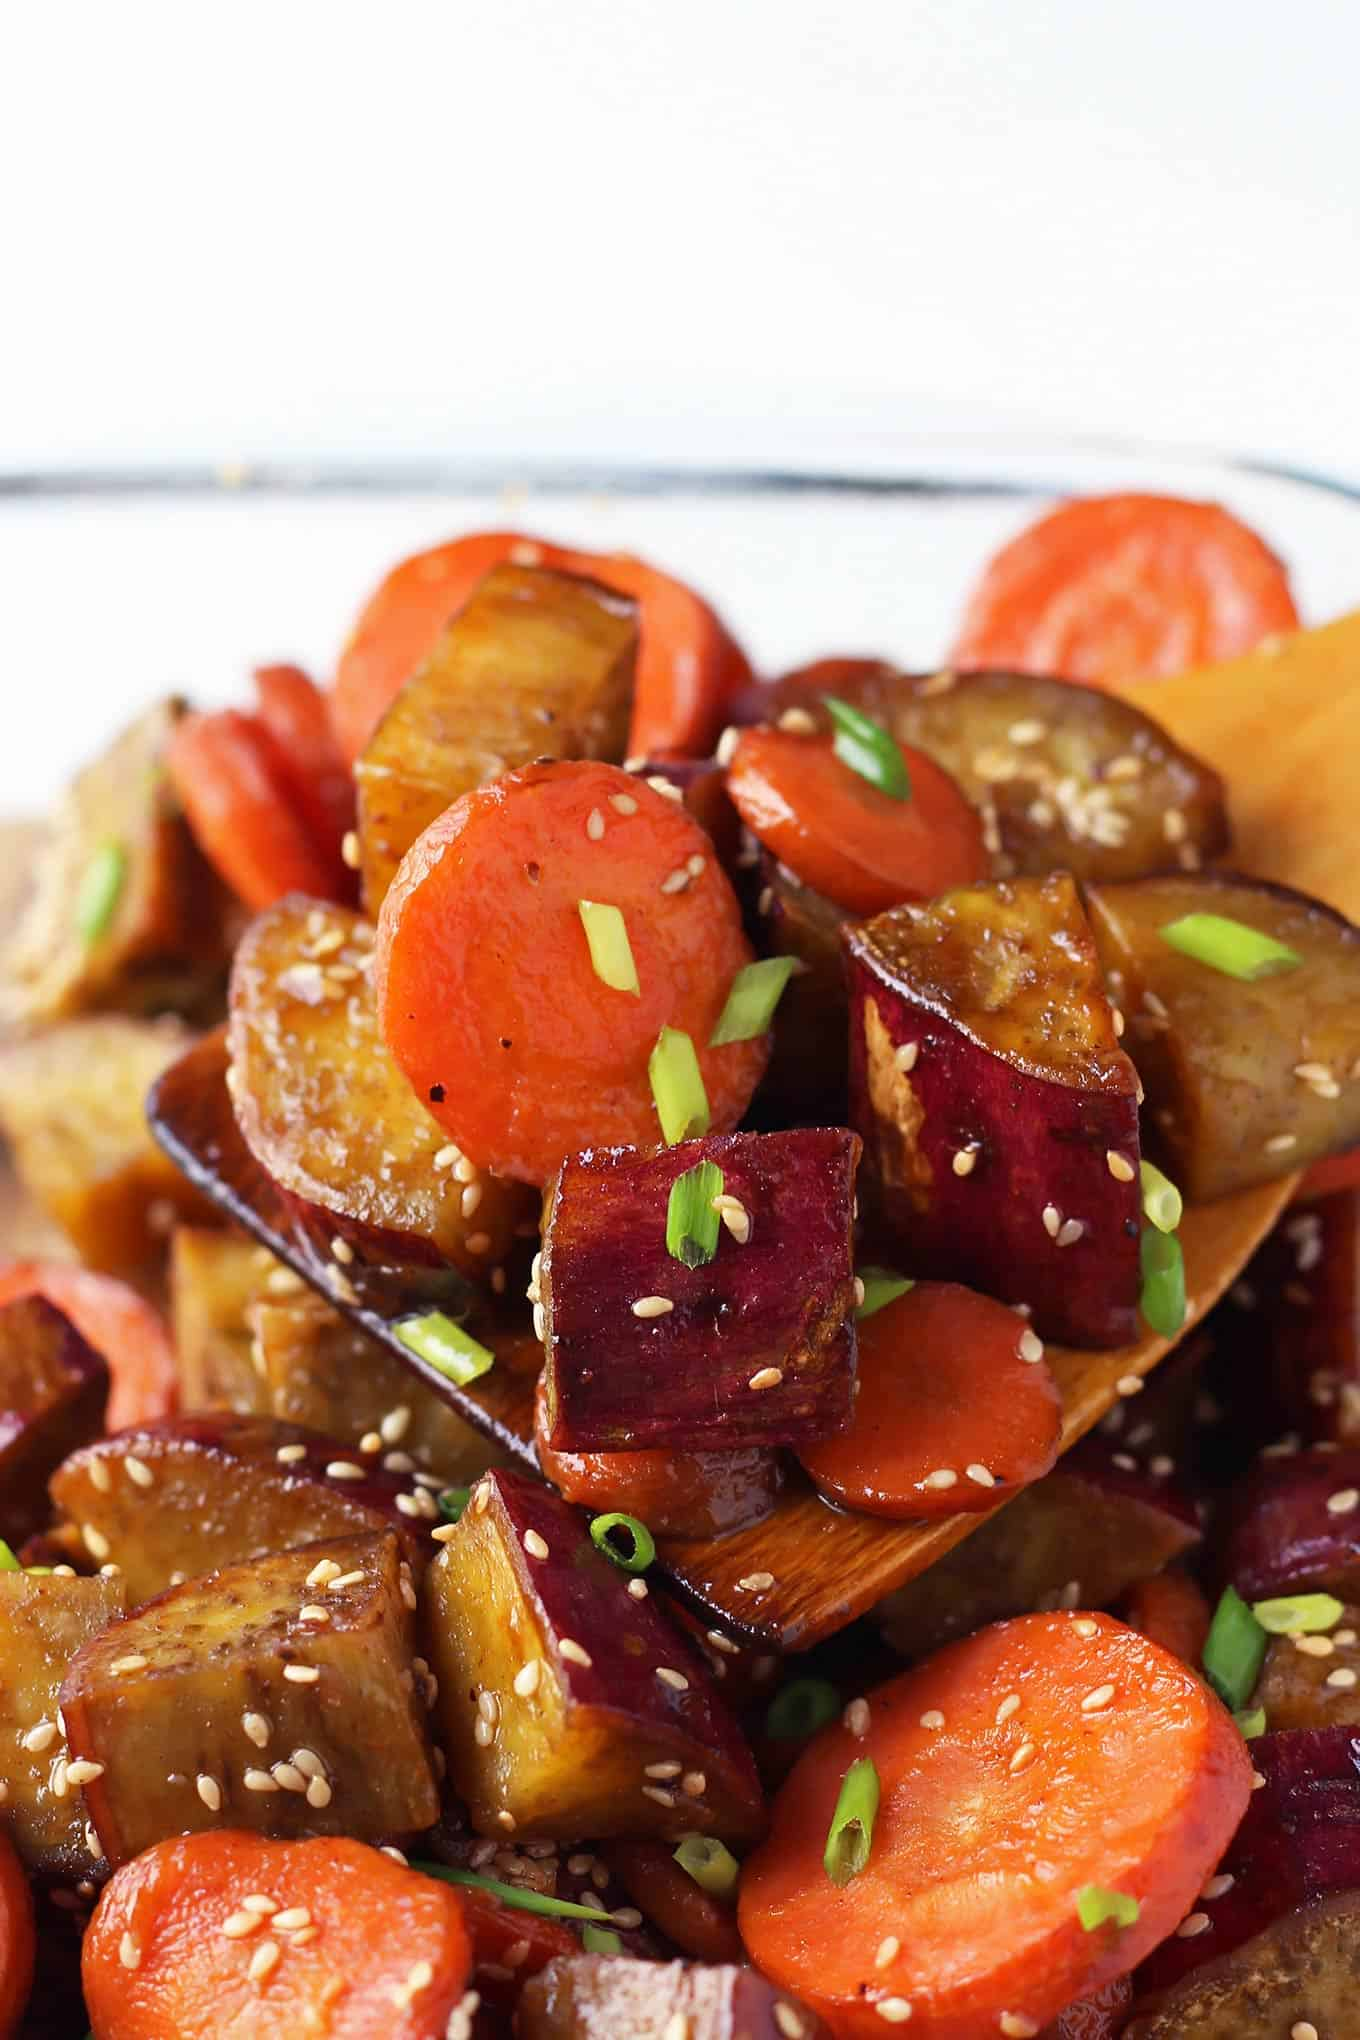 Baking Dish of Roasted Vegetables